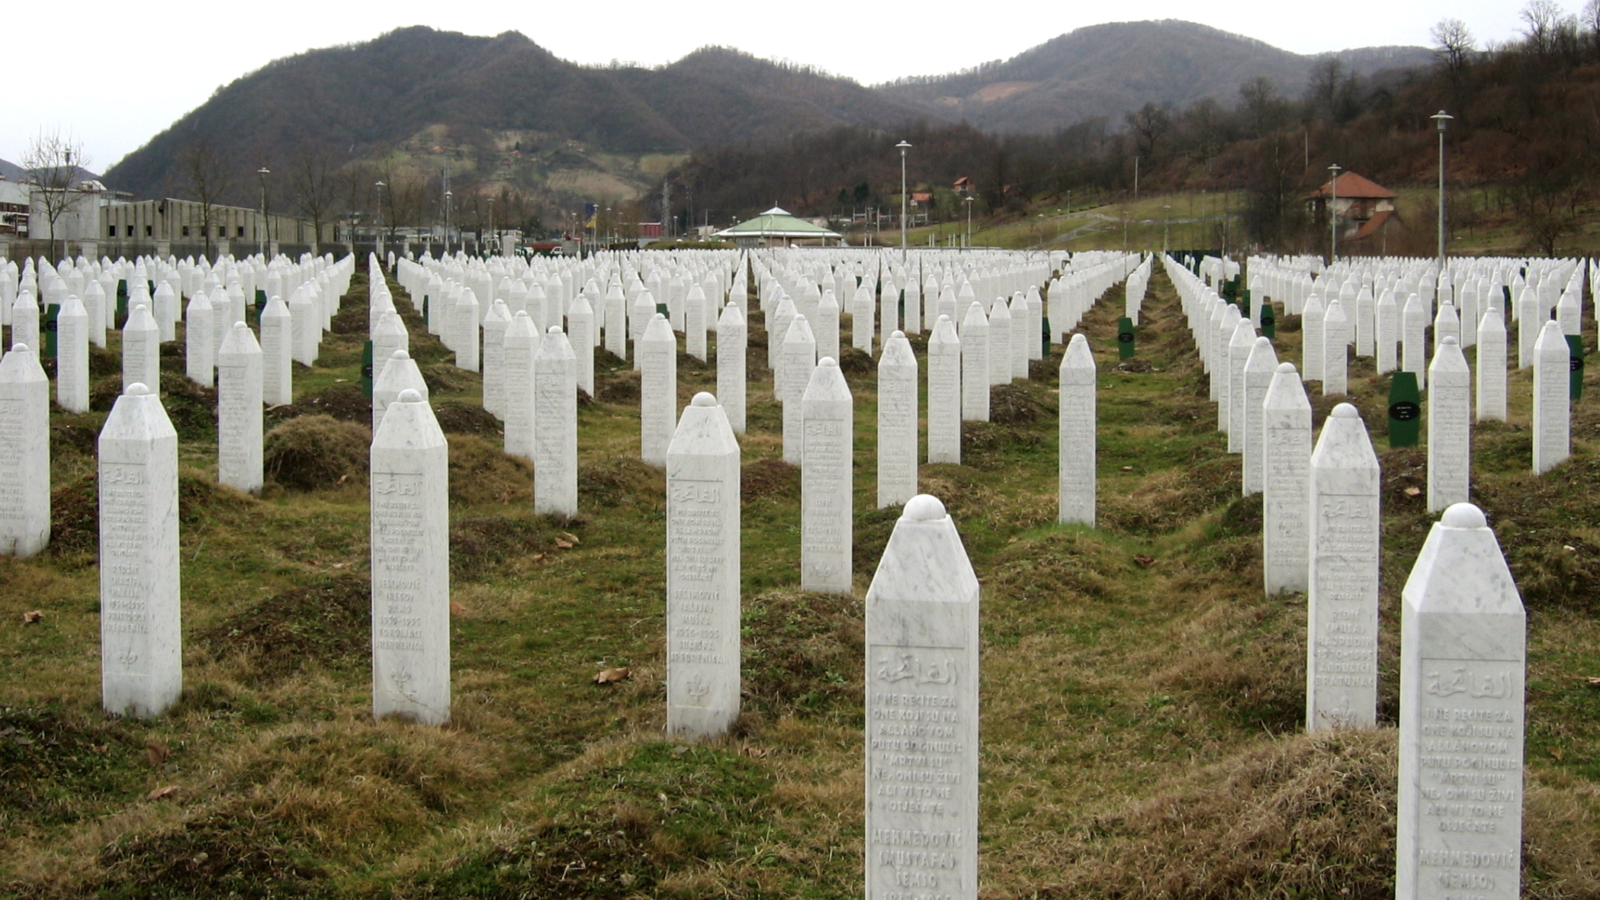 Rows of white, pillar-shaped gravestones are lined up in a field as part of a memorial to the Srebrenica genocide.